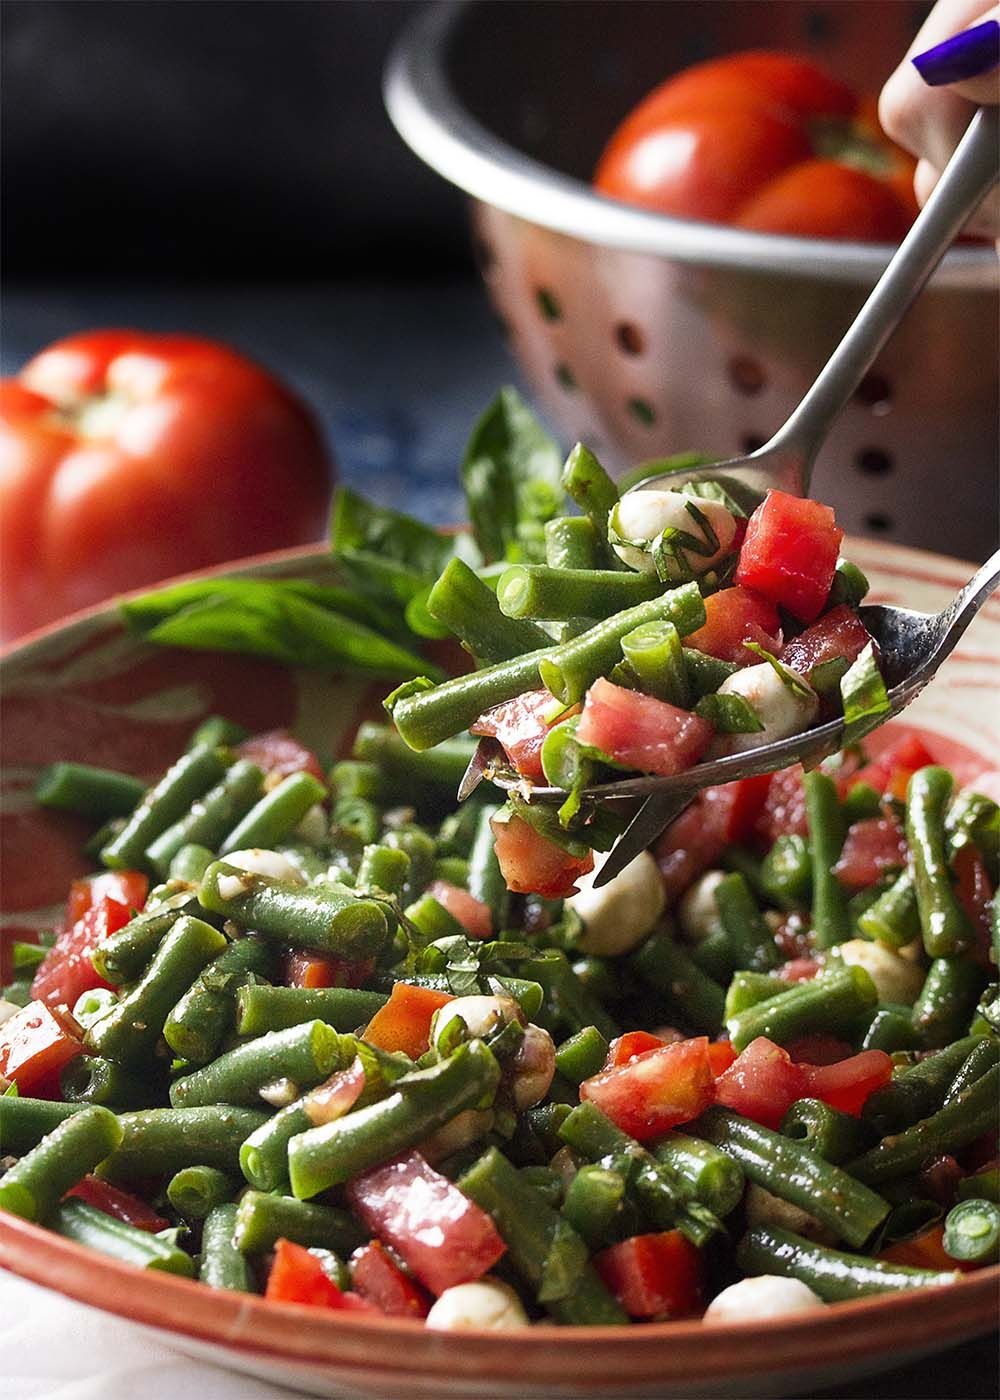 Italian Green Bean And Tomato Salad With Balsamic Dressing Recipe Italian Green Beans Green Beans Salad With Balsamic Dressing